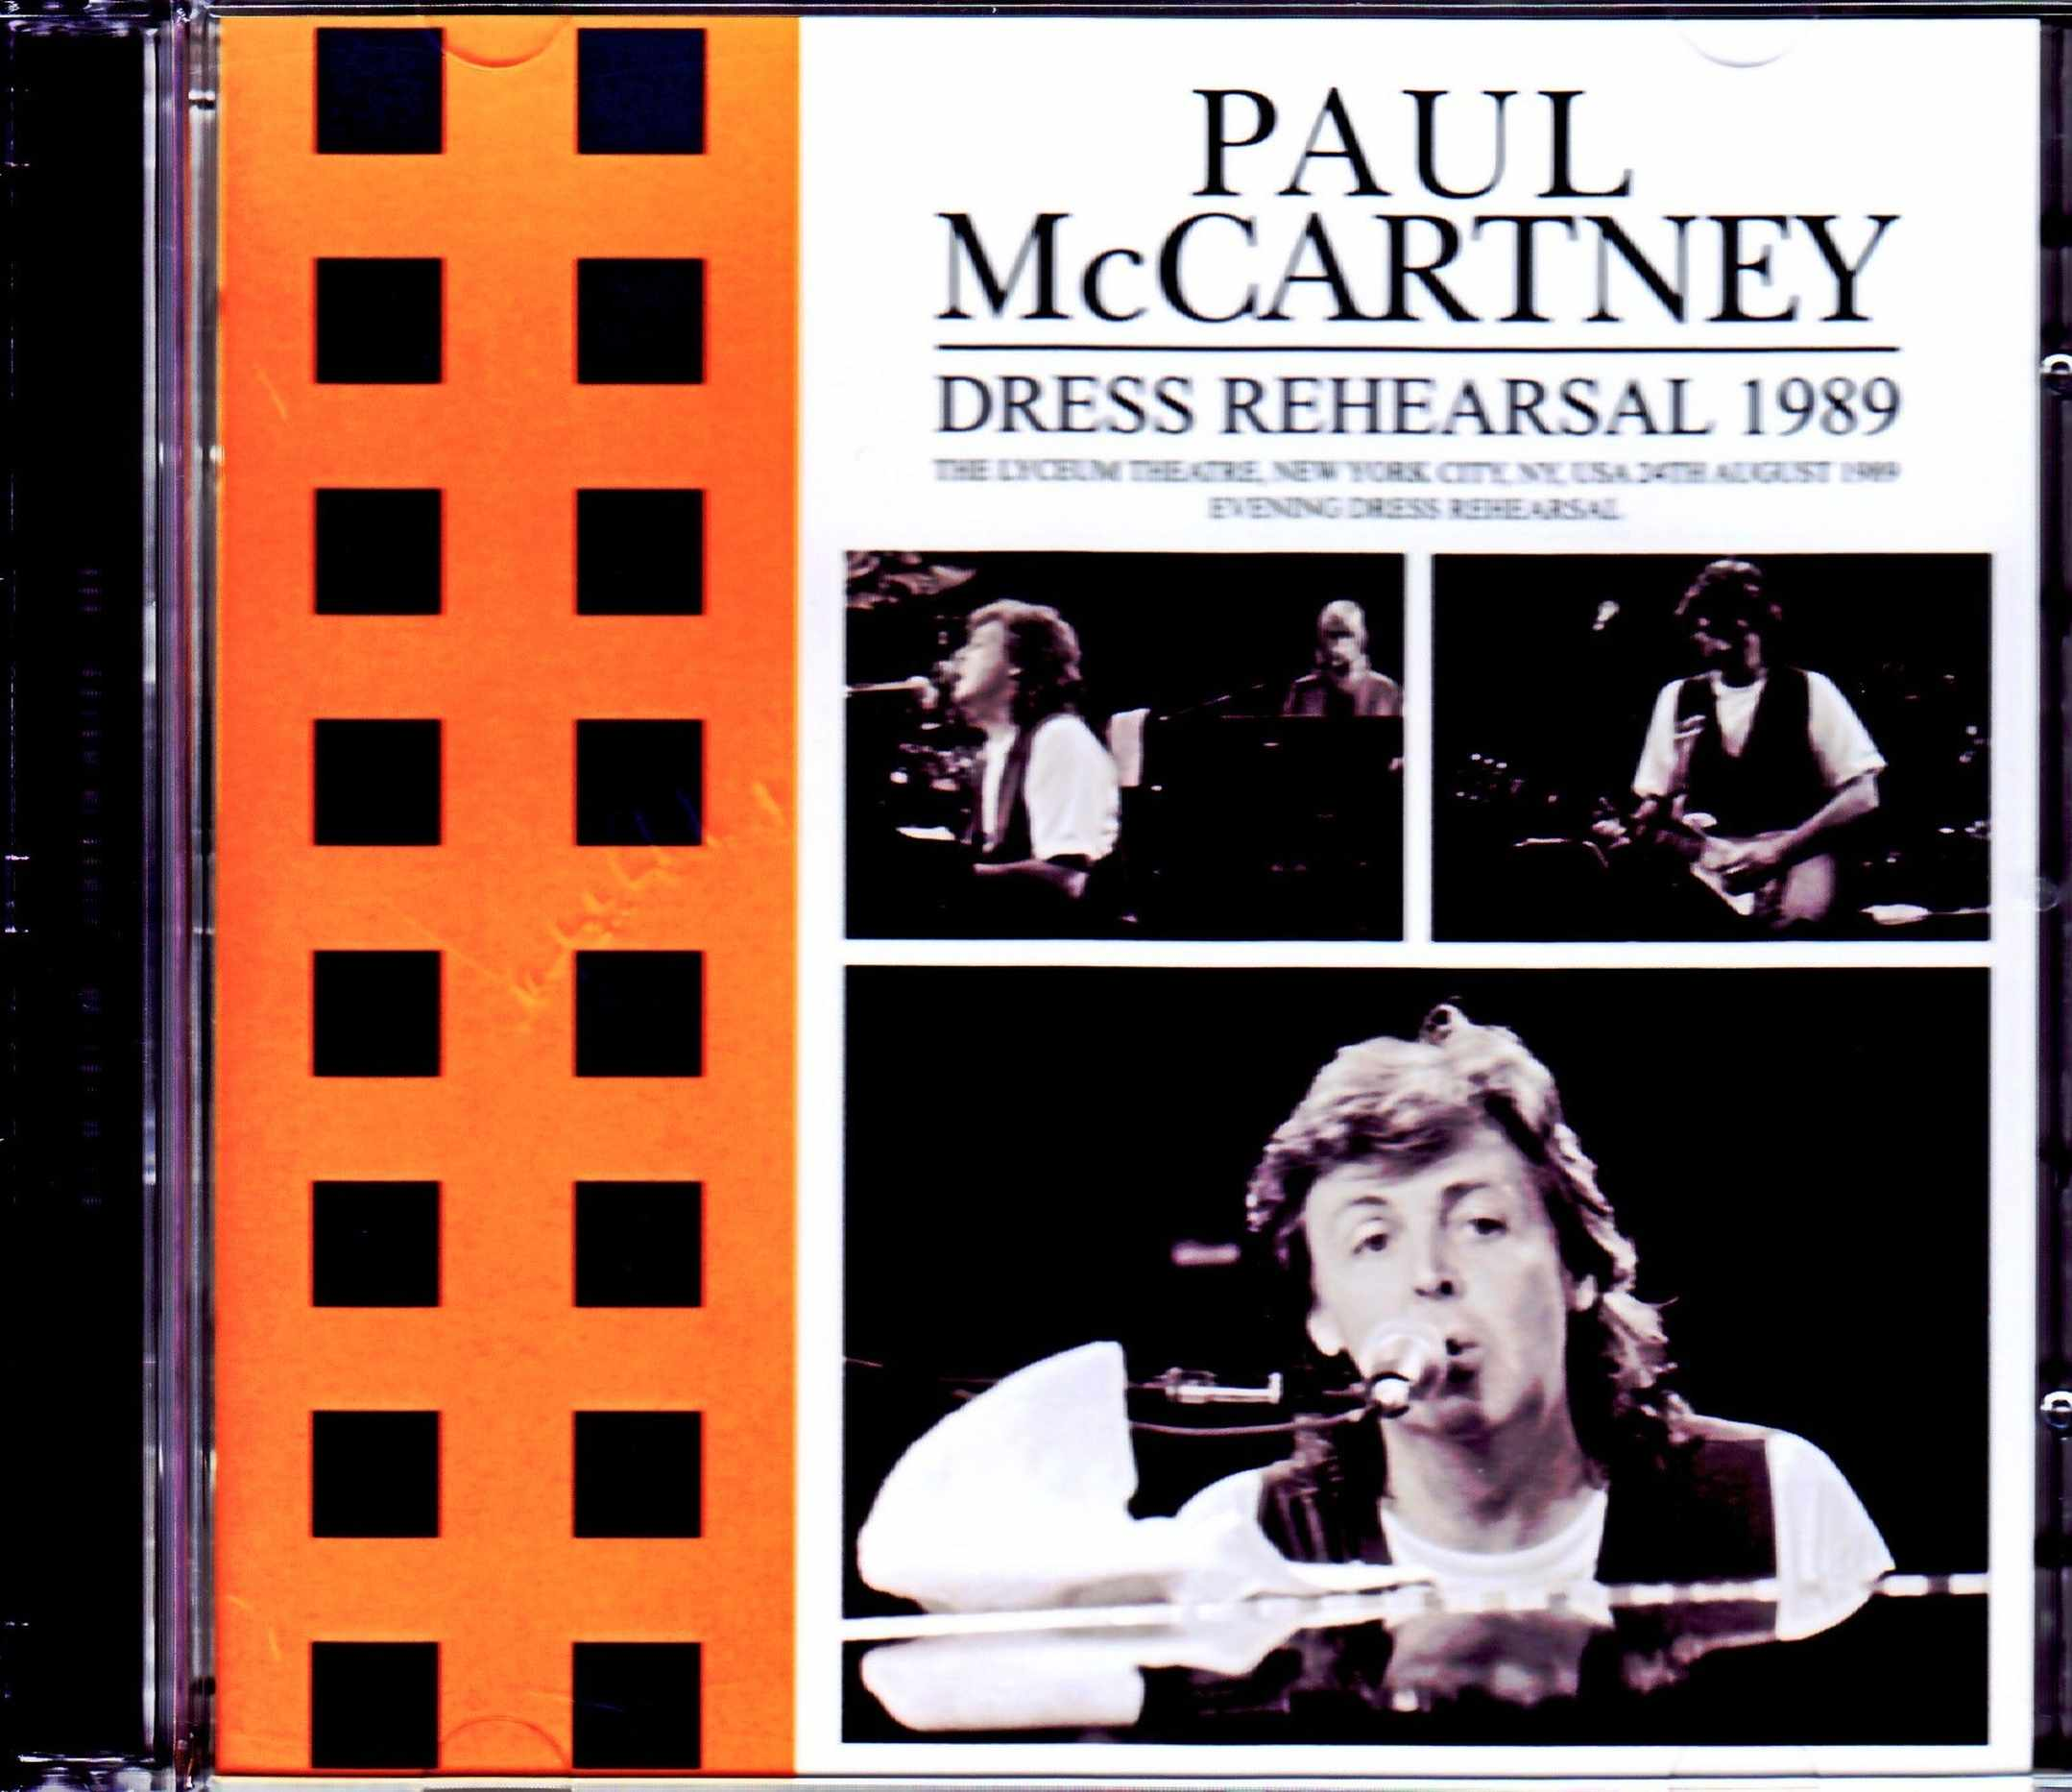 Paul McCartney ポール・マッカートニー/NY,USA 8.24.1989 Evening Dress Rehearsal